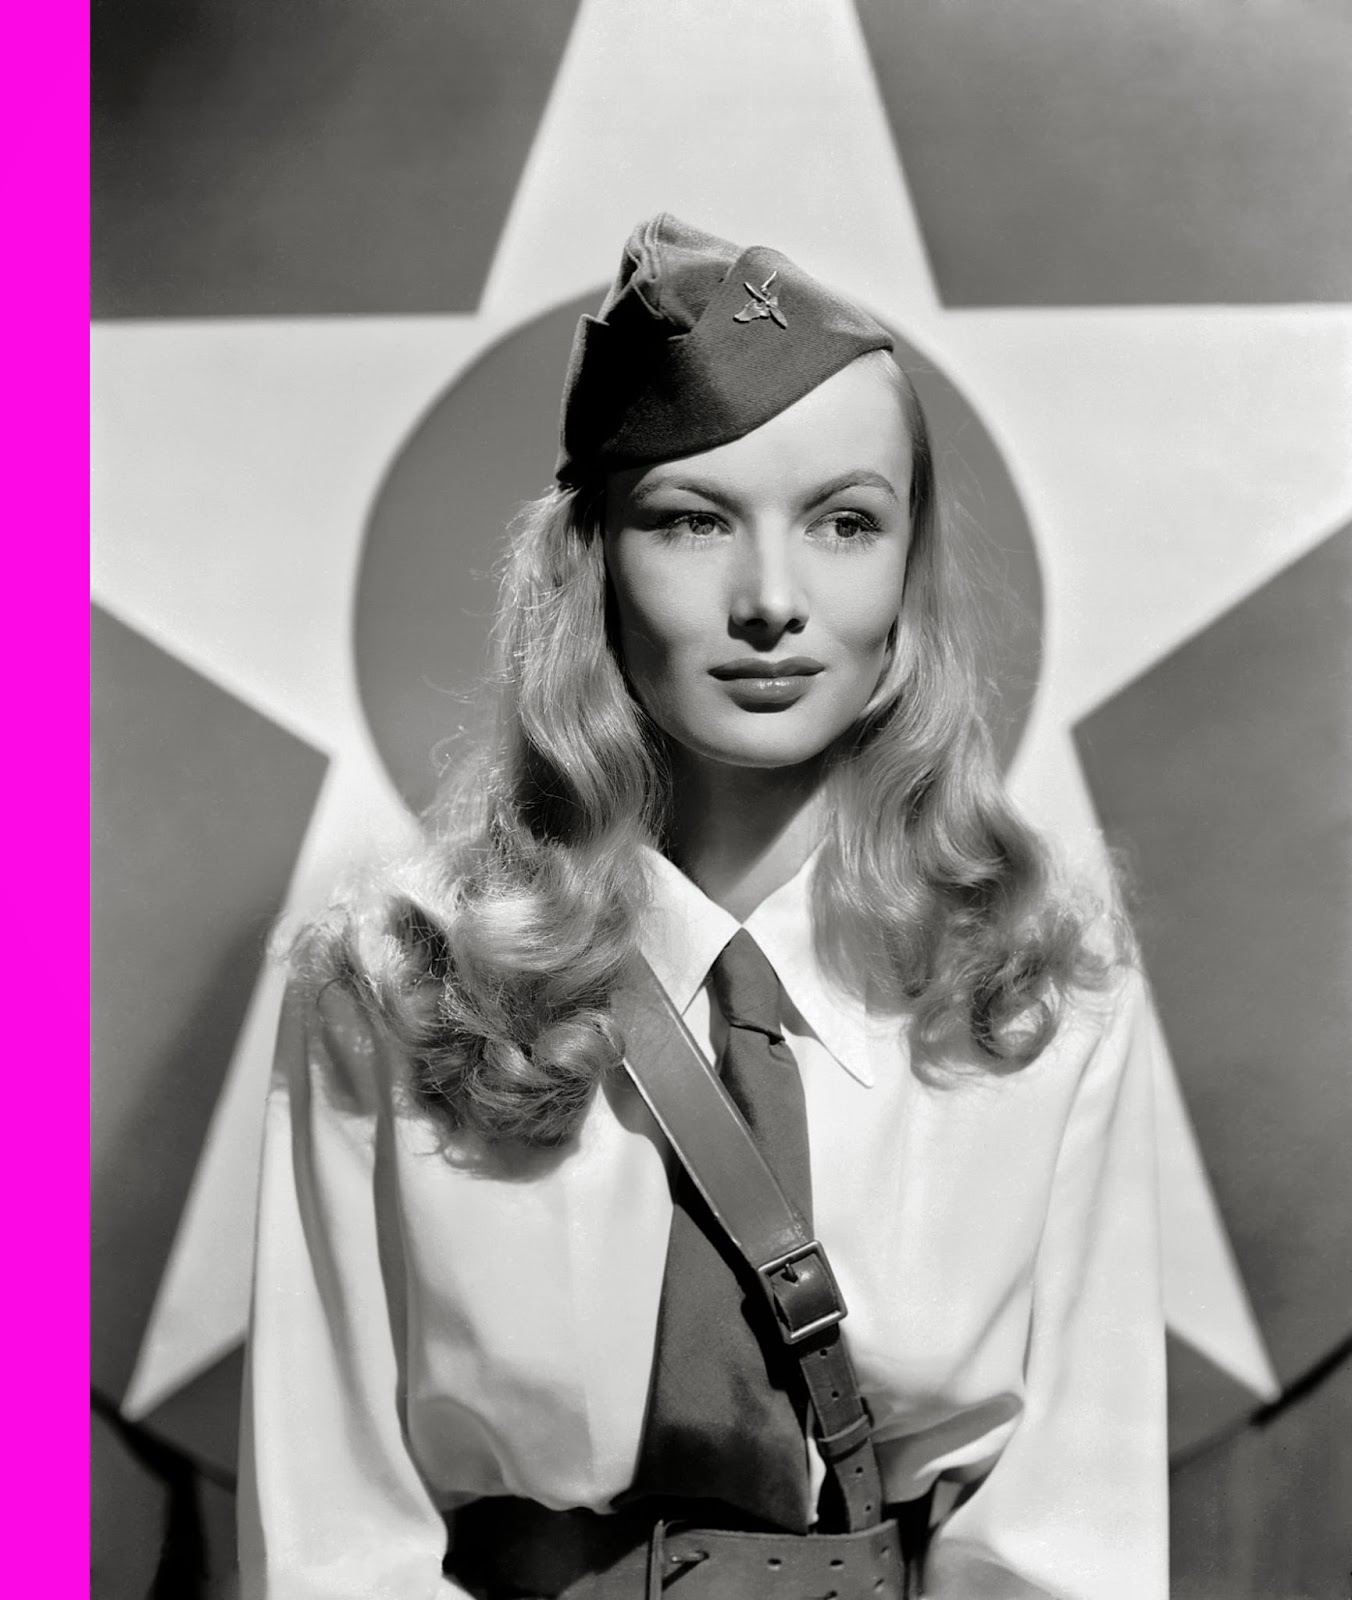 News_OFFmag: Veronica Lake (14 November 1922 - 7 July 1973)